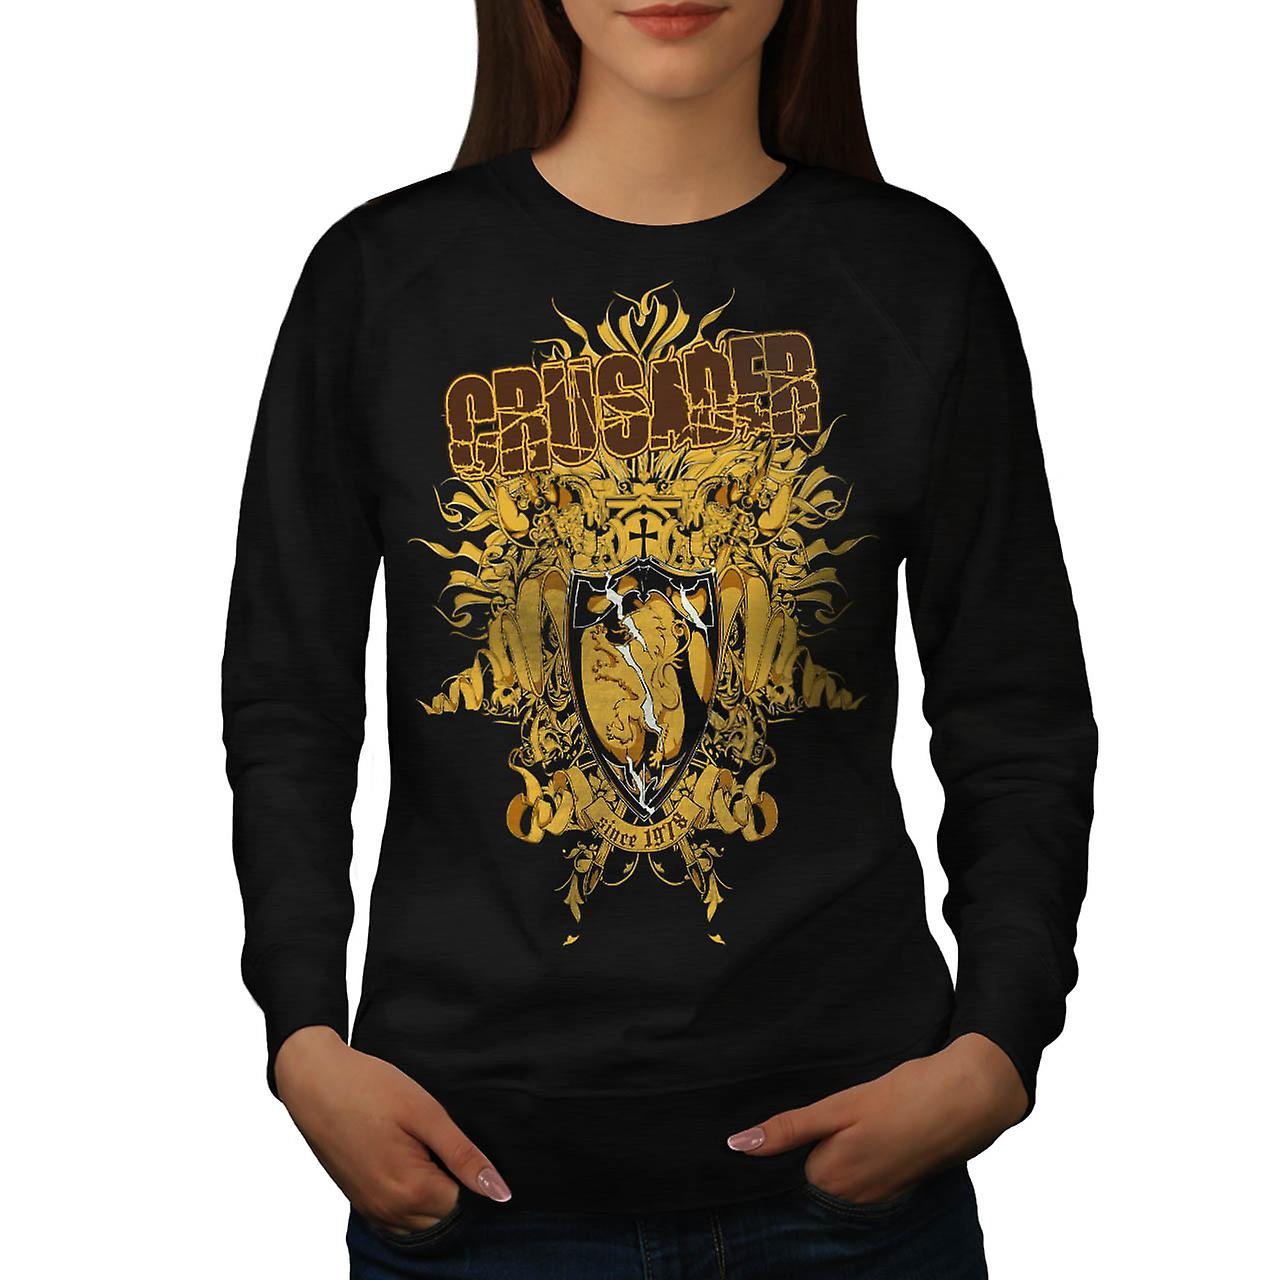 Crusader Shield Fashion Women Black Sweatshirt | Wellcoda